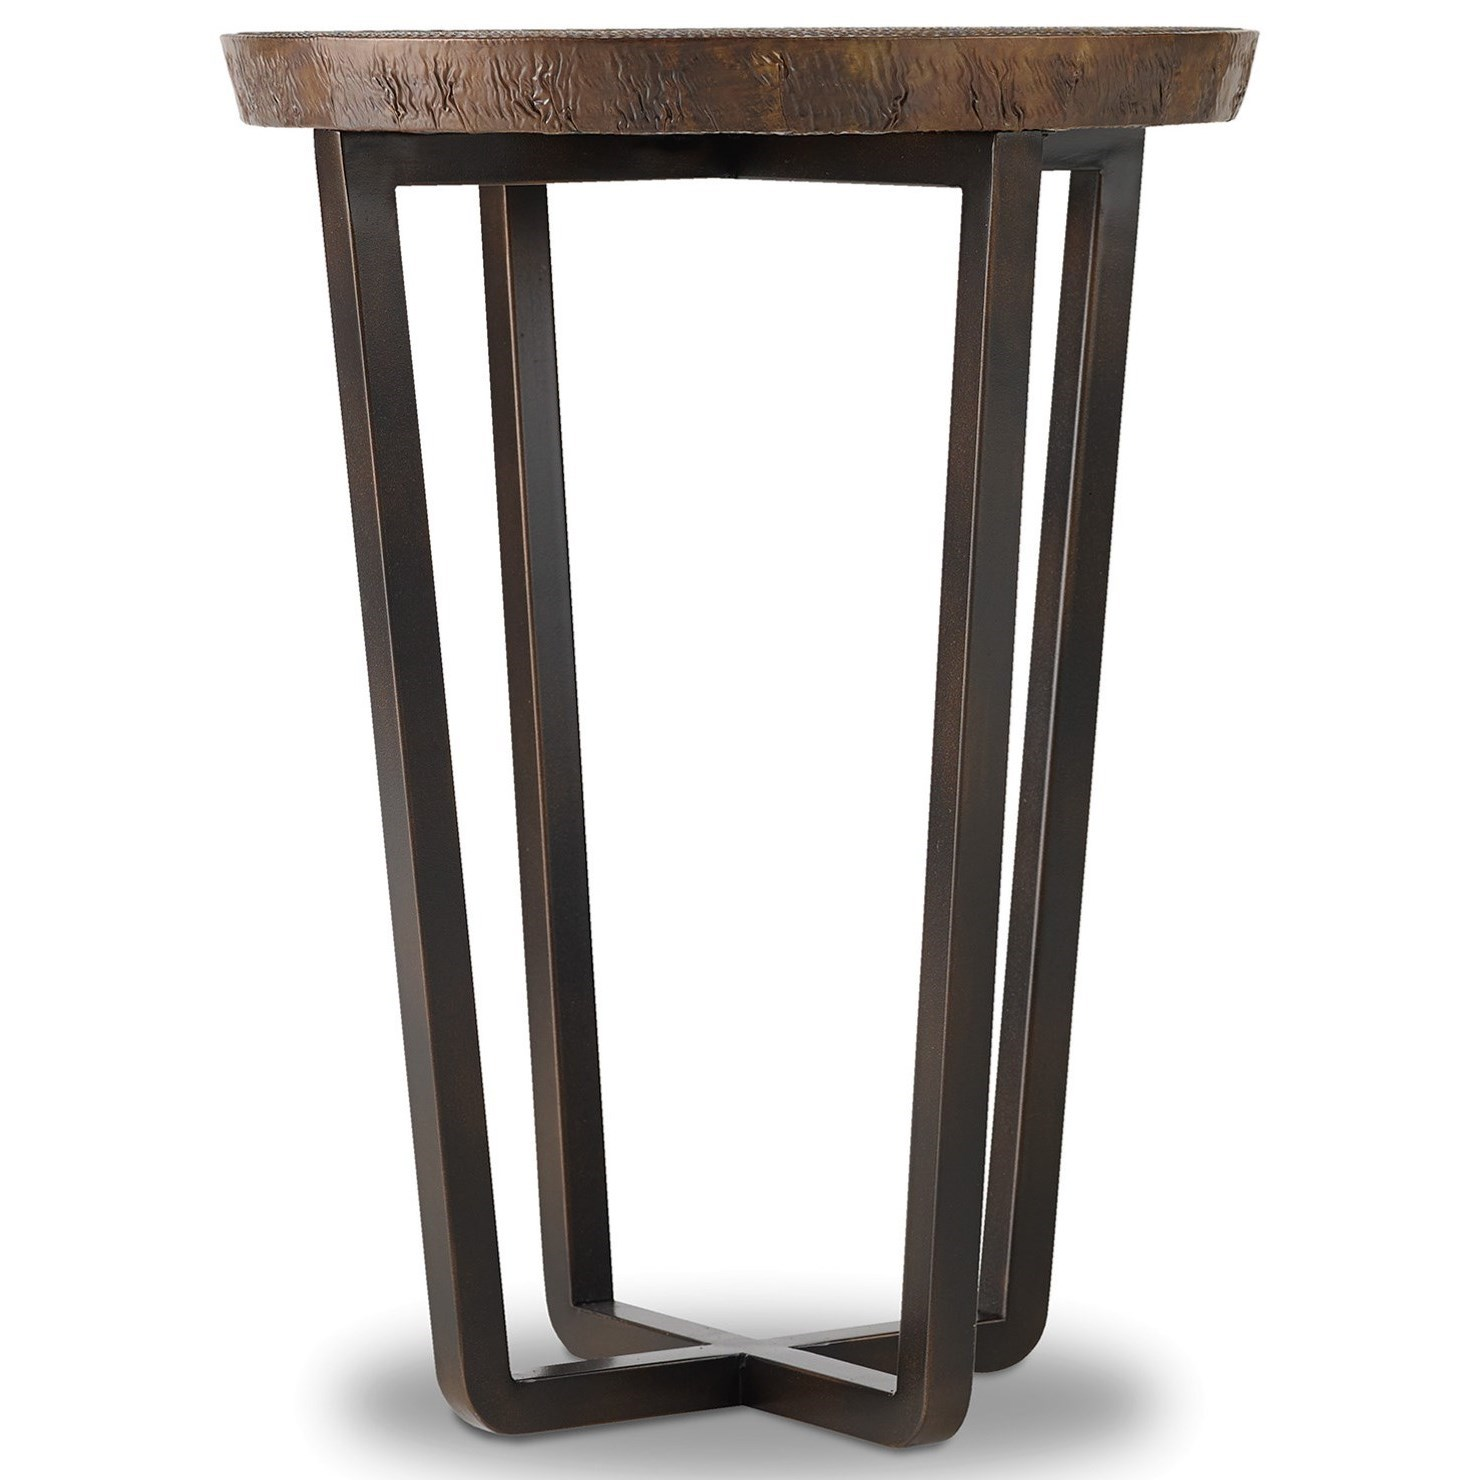 Parkcrest Martini Table by Hooker Furniture at Baer's Furniture